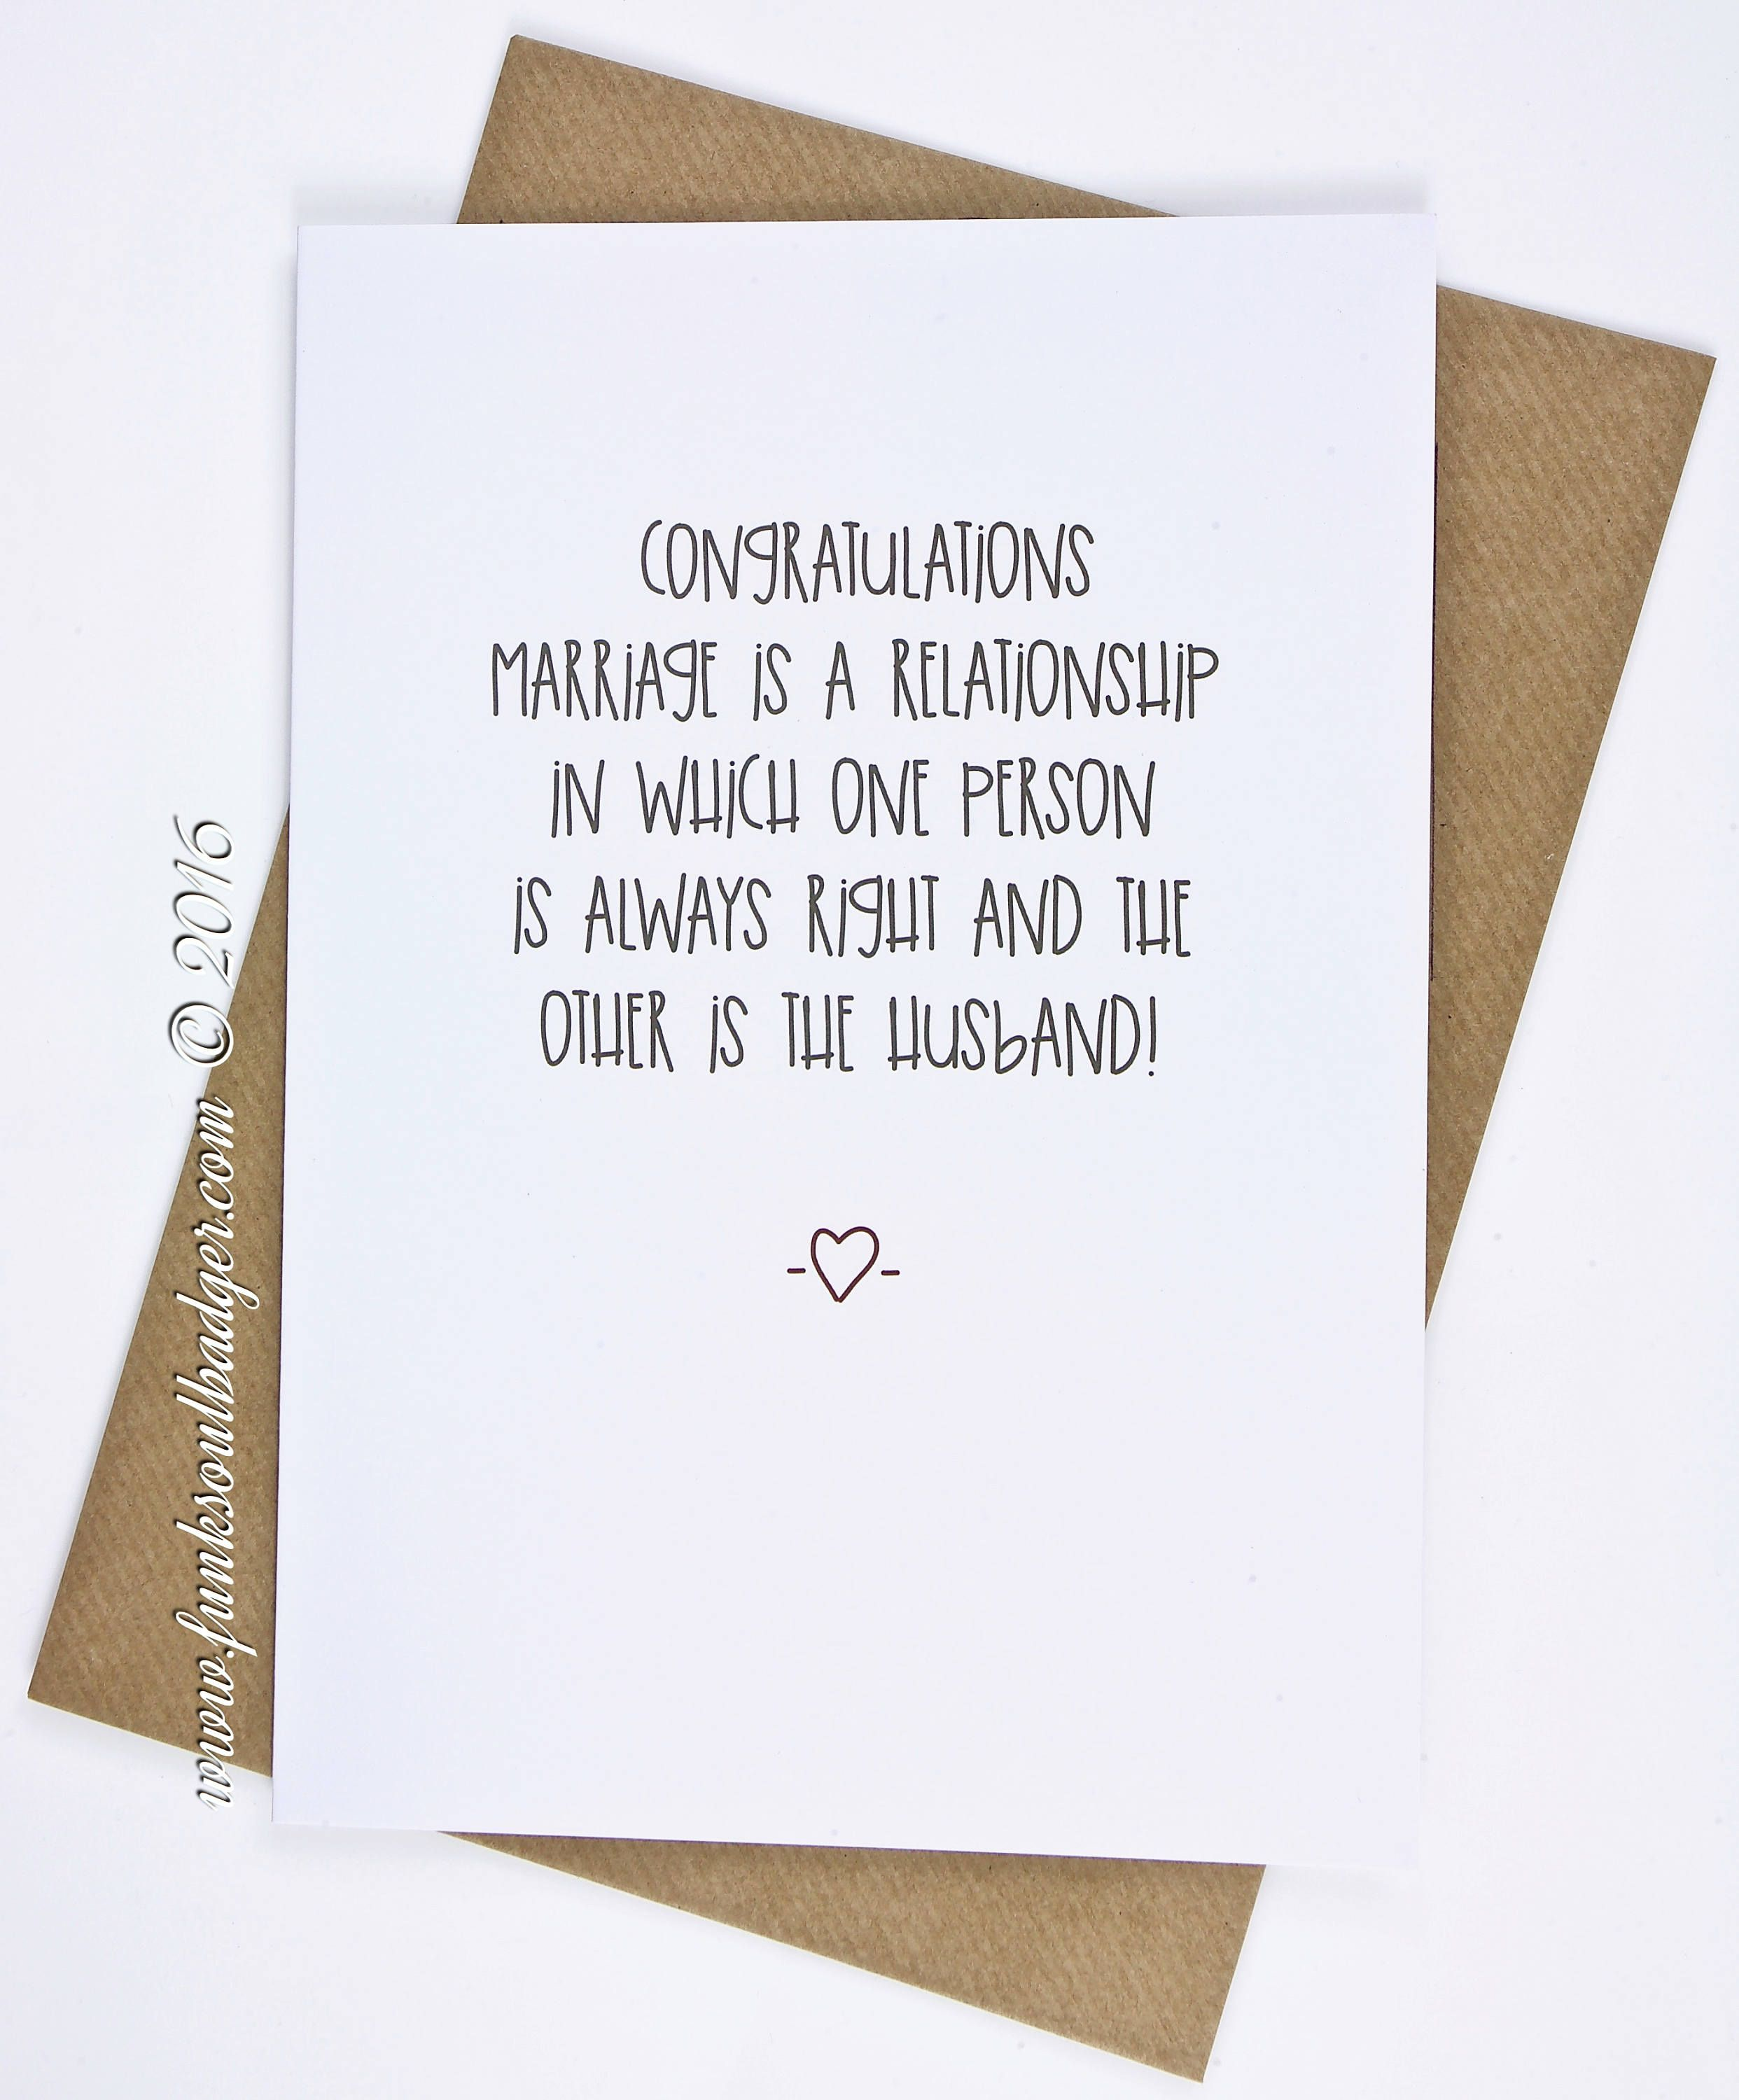 Funny Wedding Card Congratulations One Person Is Always Right Funny Wedding Cards Congratulations Funny Wedding Cards Wedding Card Messages